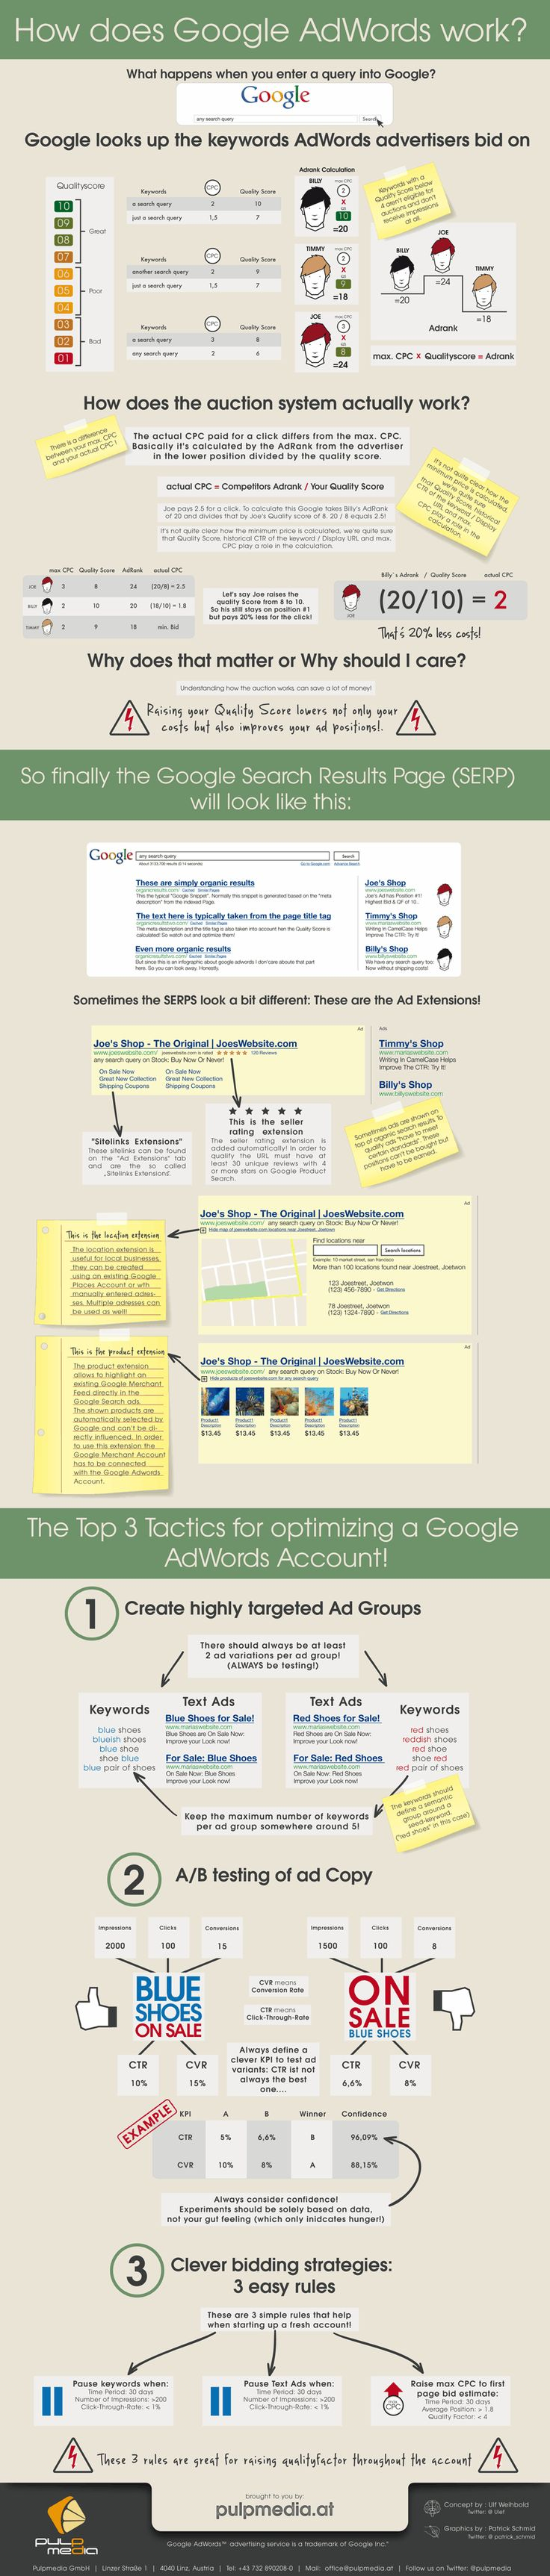 How does Google AdWords Work? Pay-Per-Click orPPC campaigns are dynamic and can produce tremendous results for businesses that select a professional team like the one at Universal Positions. http://universalpositions.com/ppccampaign-management-google